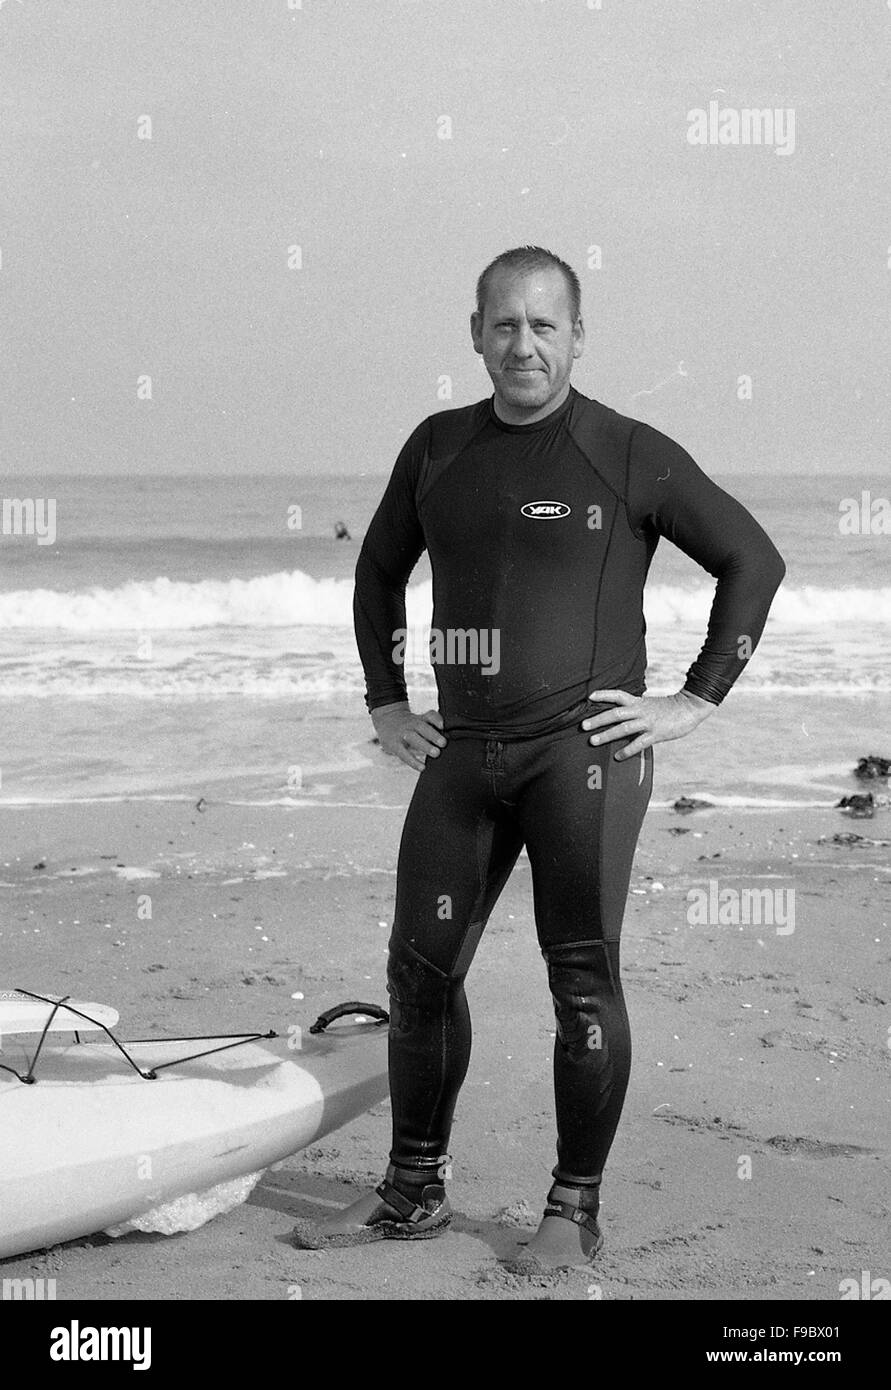 Wet Suit Black and White Stock Photos   Images - Alamy 825fb2738